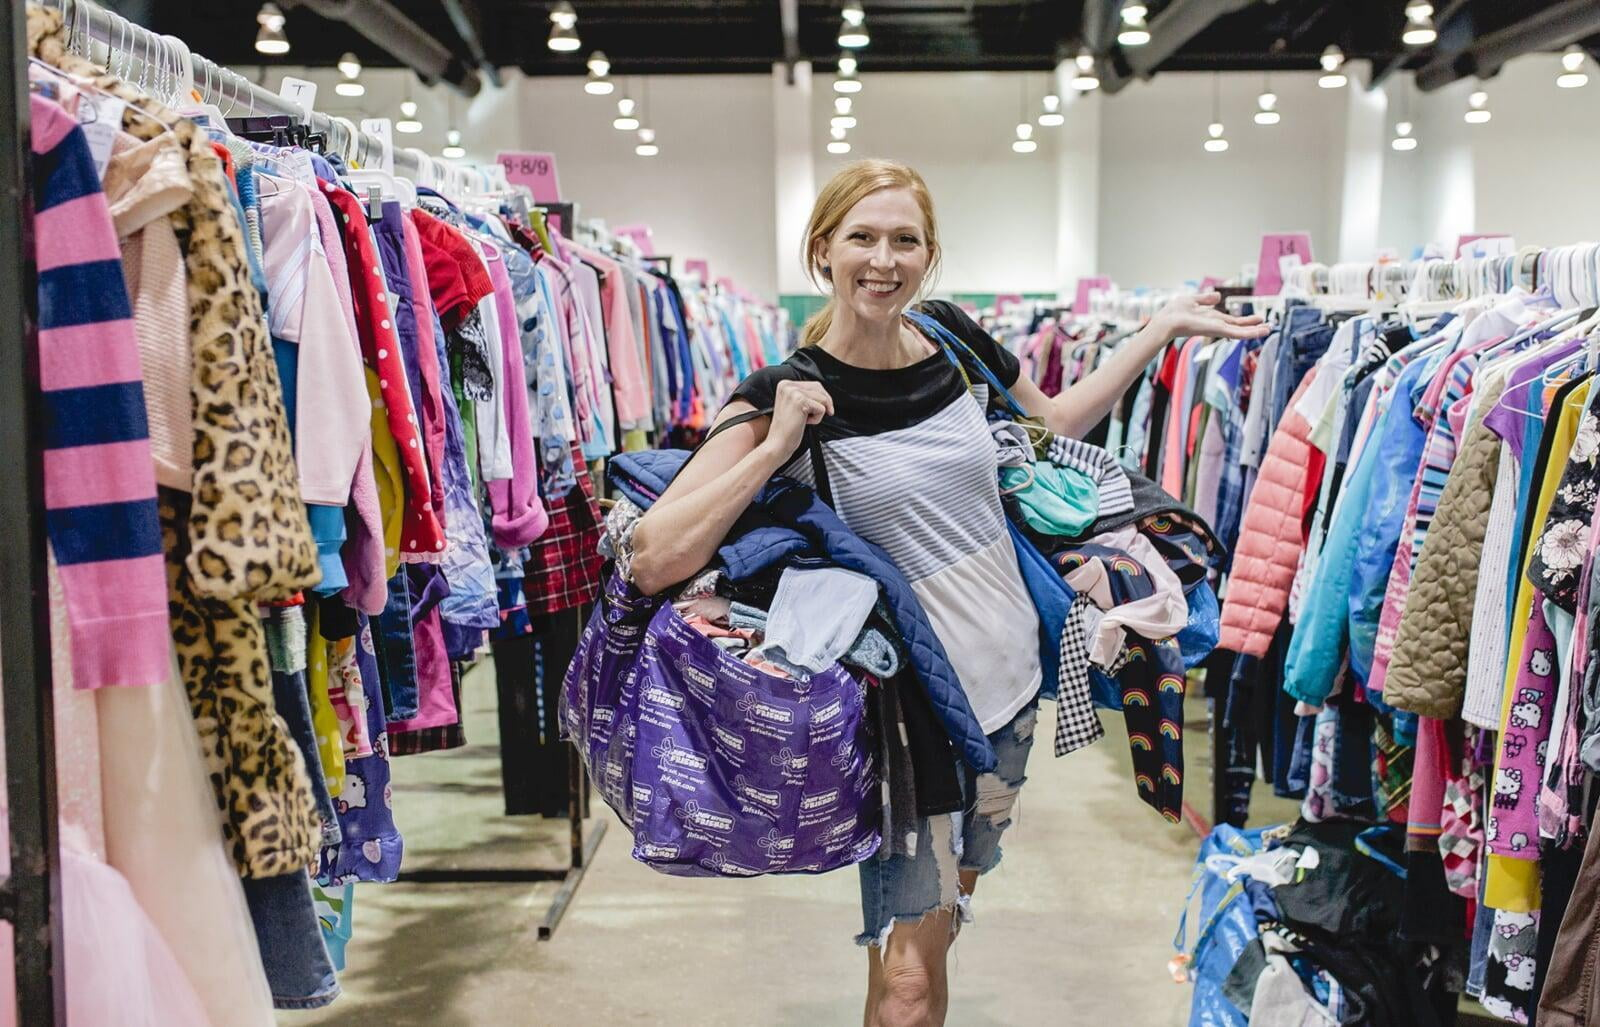 Mom holds hand up to show of rows and rows of clothing for sale at 50 to 90% off retail prices!